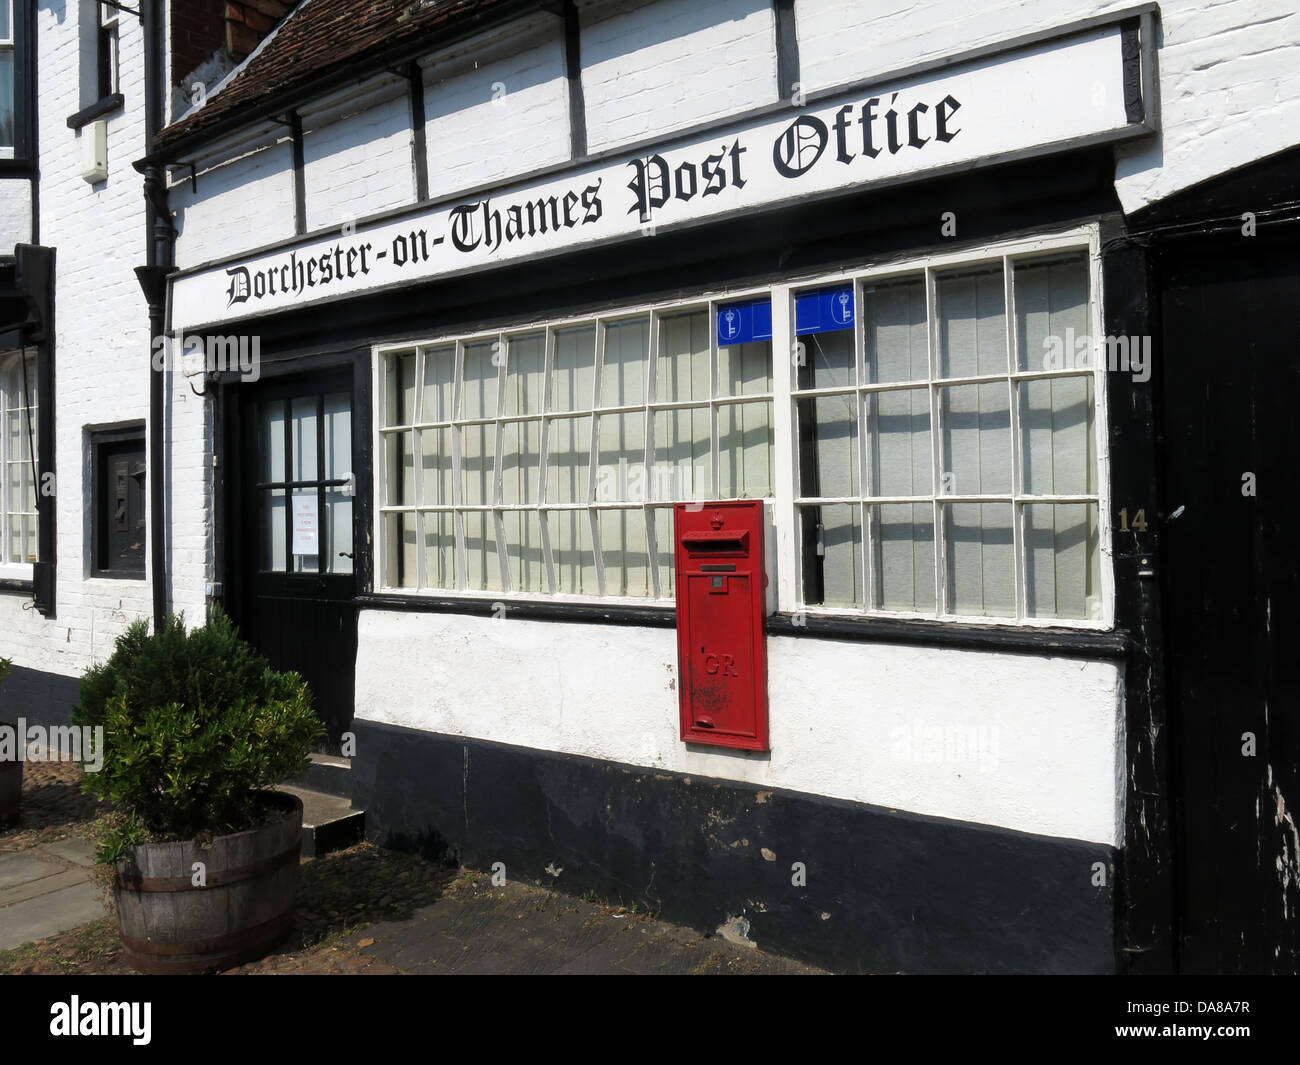 Dorchester-on-Thames,England,UK,on-thames,another,closed,PO,district,subpostoffice,sub-post,Oxen,Oxfordshire,England,quaint,interesting,unique,olde,on-Thames,OX10,7LJ,OX107LJ,interesting,timber,framed,building,historic,history,near,Wallingford,red,postbox,tourist,tourism,gotonysmith,Buy Pictures of,Buy Images Of